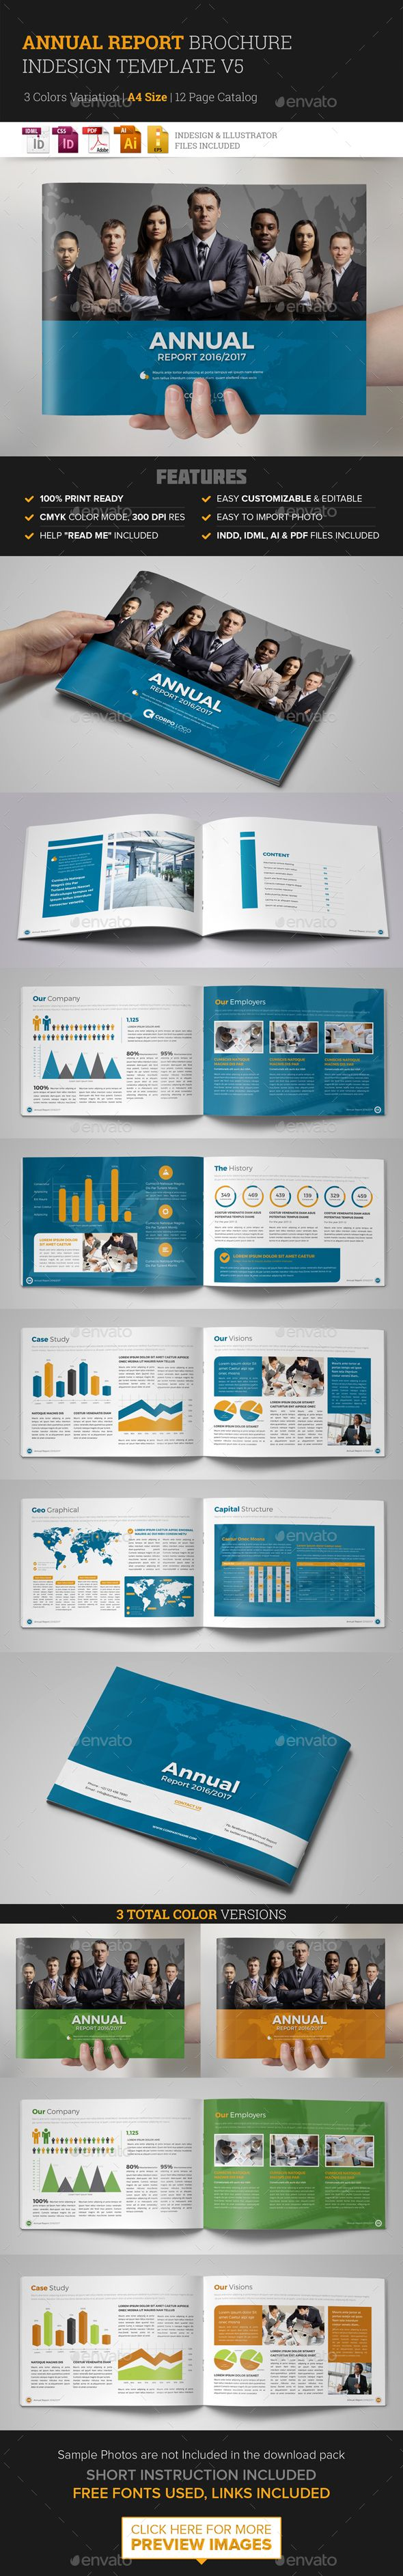 Annual Report Brochure Indesign Template 5 | Indesign templates ...